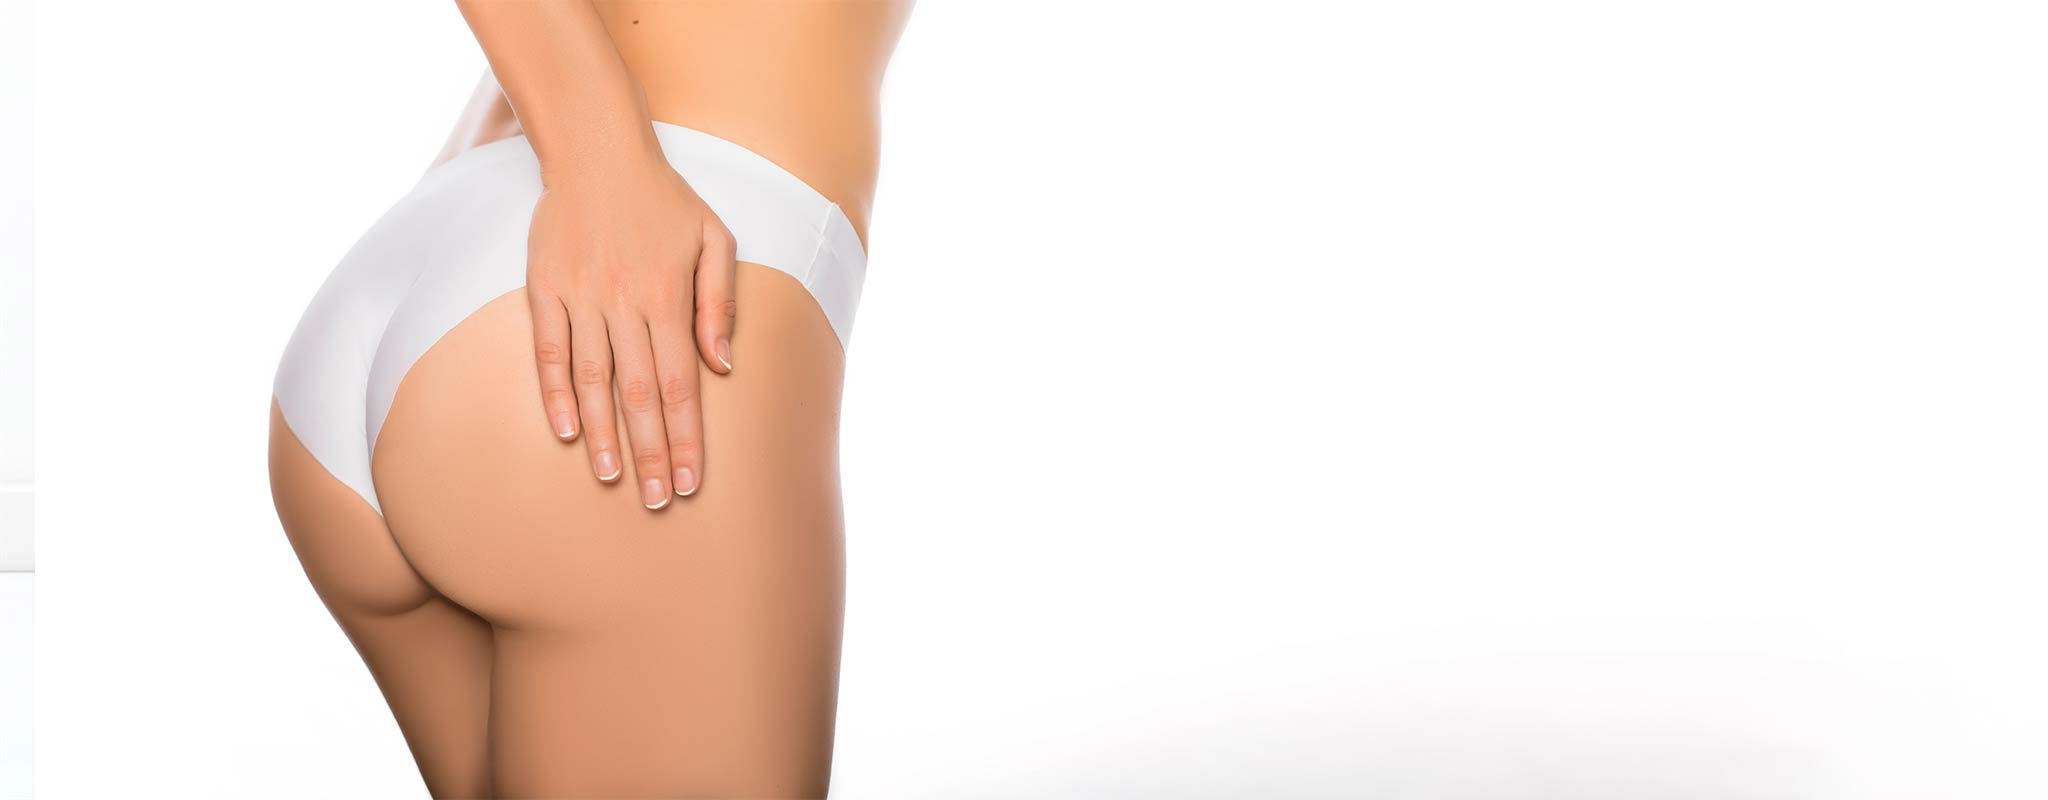 Buttock Implants (Brazilian Butt Lift)